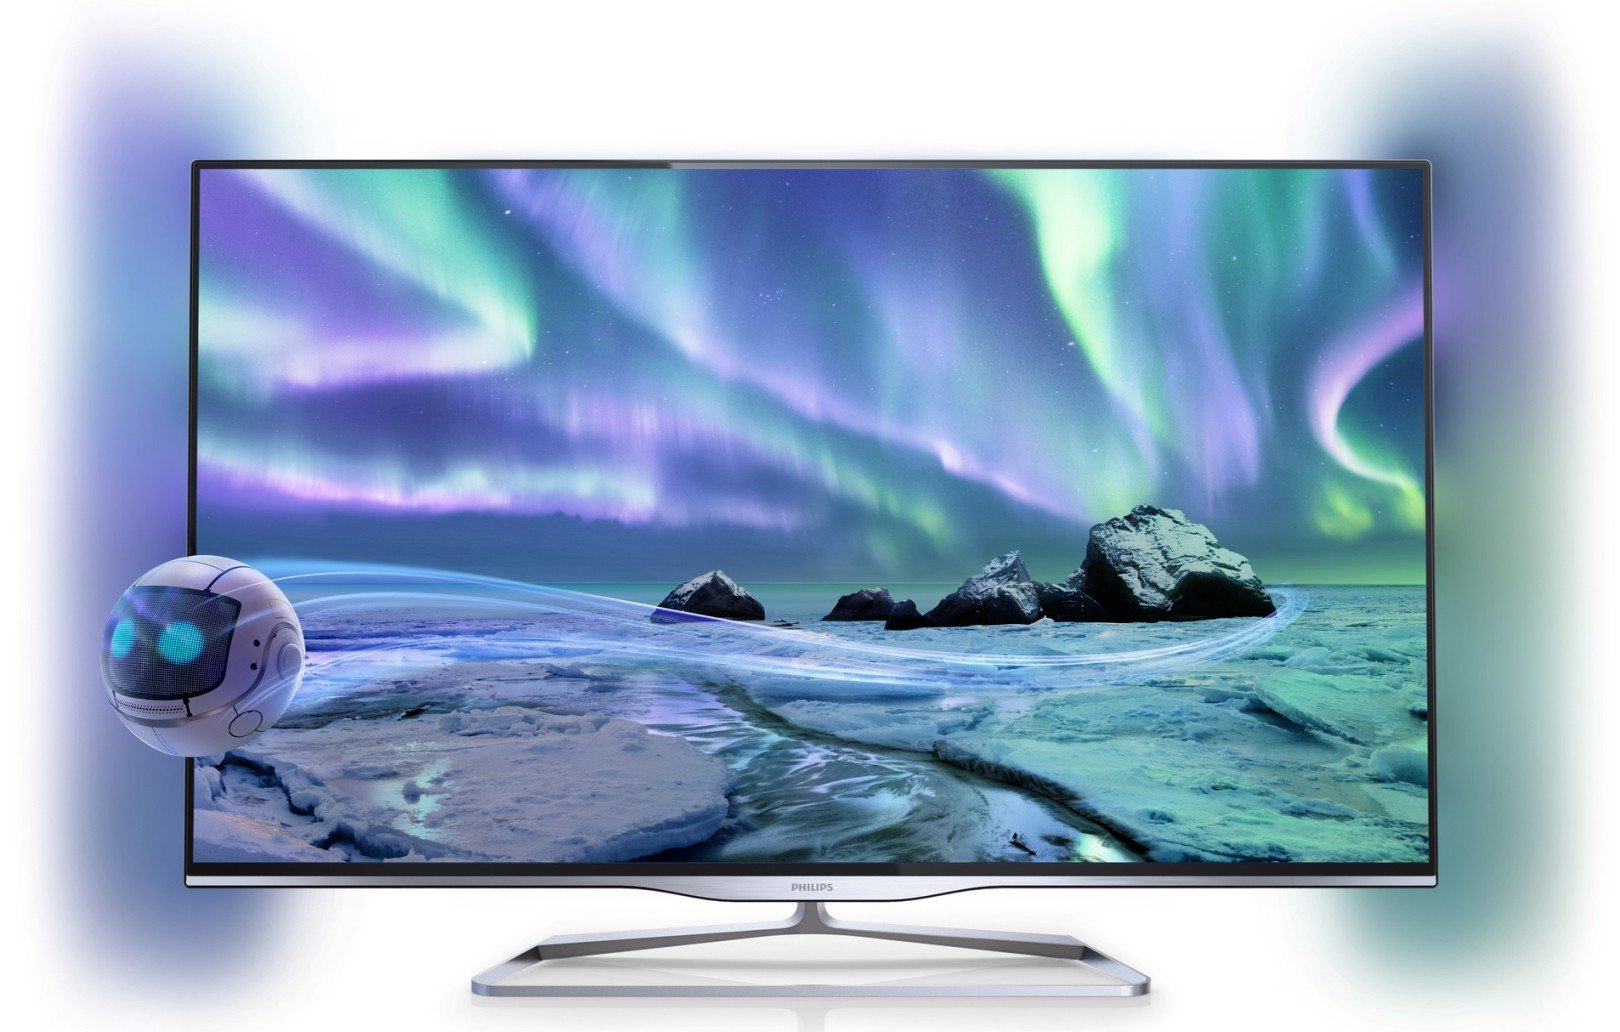 philips 42pfk654912 smart tv philips led 3d 42pfk654912 42 tv led 3d philips 42pfk654912. Black Bedroom Furniture Sets. Home Design Ideas